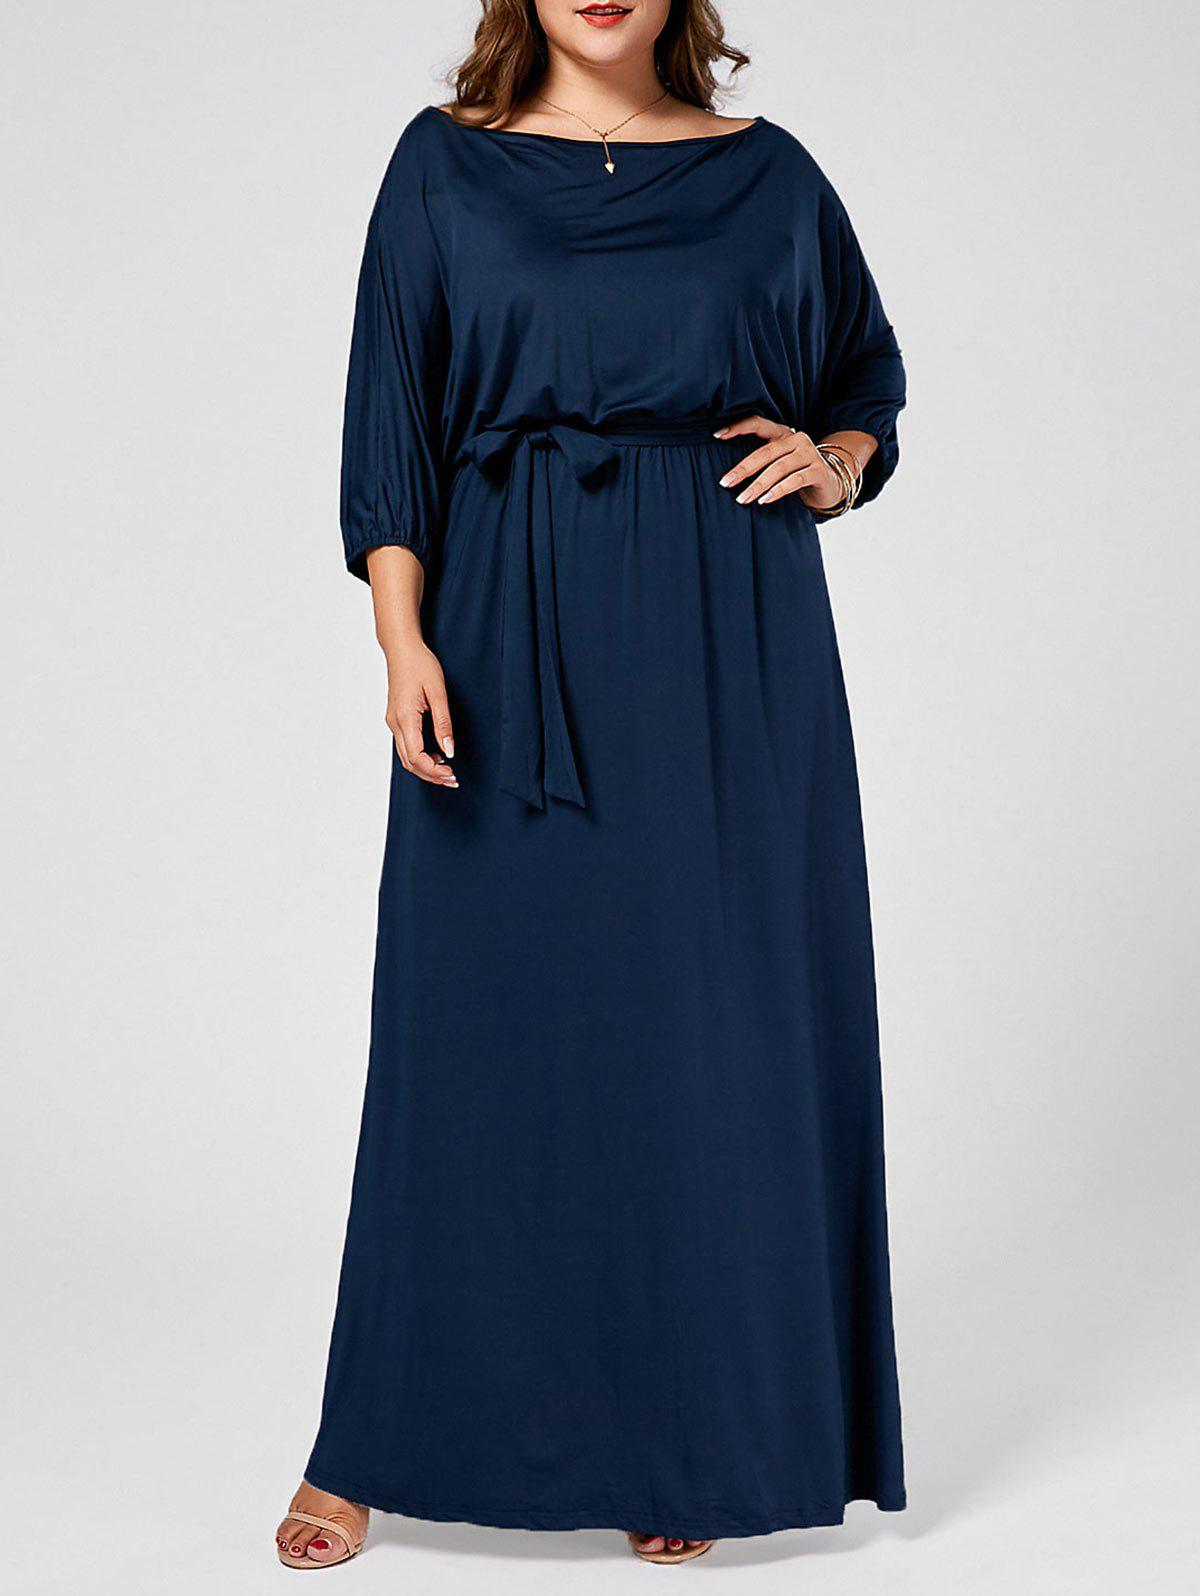 Skew Neck Batwing Plus Size Maxi DressWOMEN<br><br>Size: 3XL; Color: PURPLISH BLUE; Style: Brief; Material: Cotton Blend,Polyester; Silhouette: Straight; Dresses Length: Ankle-Length; Neckline: Skew Collar; Sleeve Type: Batwing Sleeve; Sleeve Length: Short Sleeves; Pattern Type: Solid Color; With Belt: Yes; Season: Spring,Summer; Weight: 0.4000kg; Package Contents: 1 x Dress 1 x Belt;